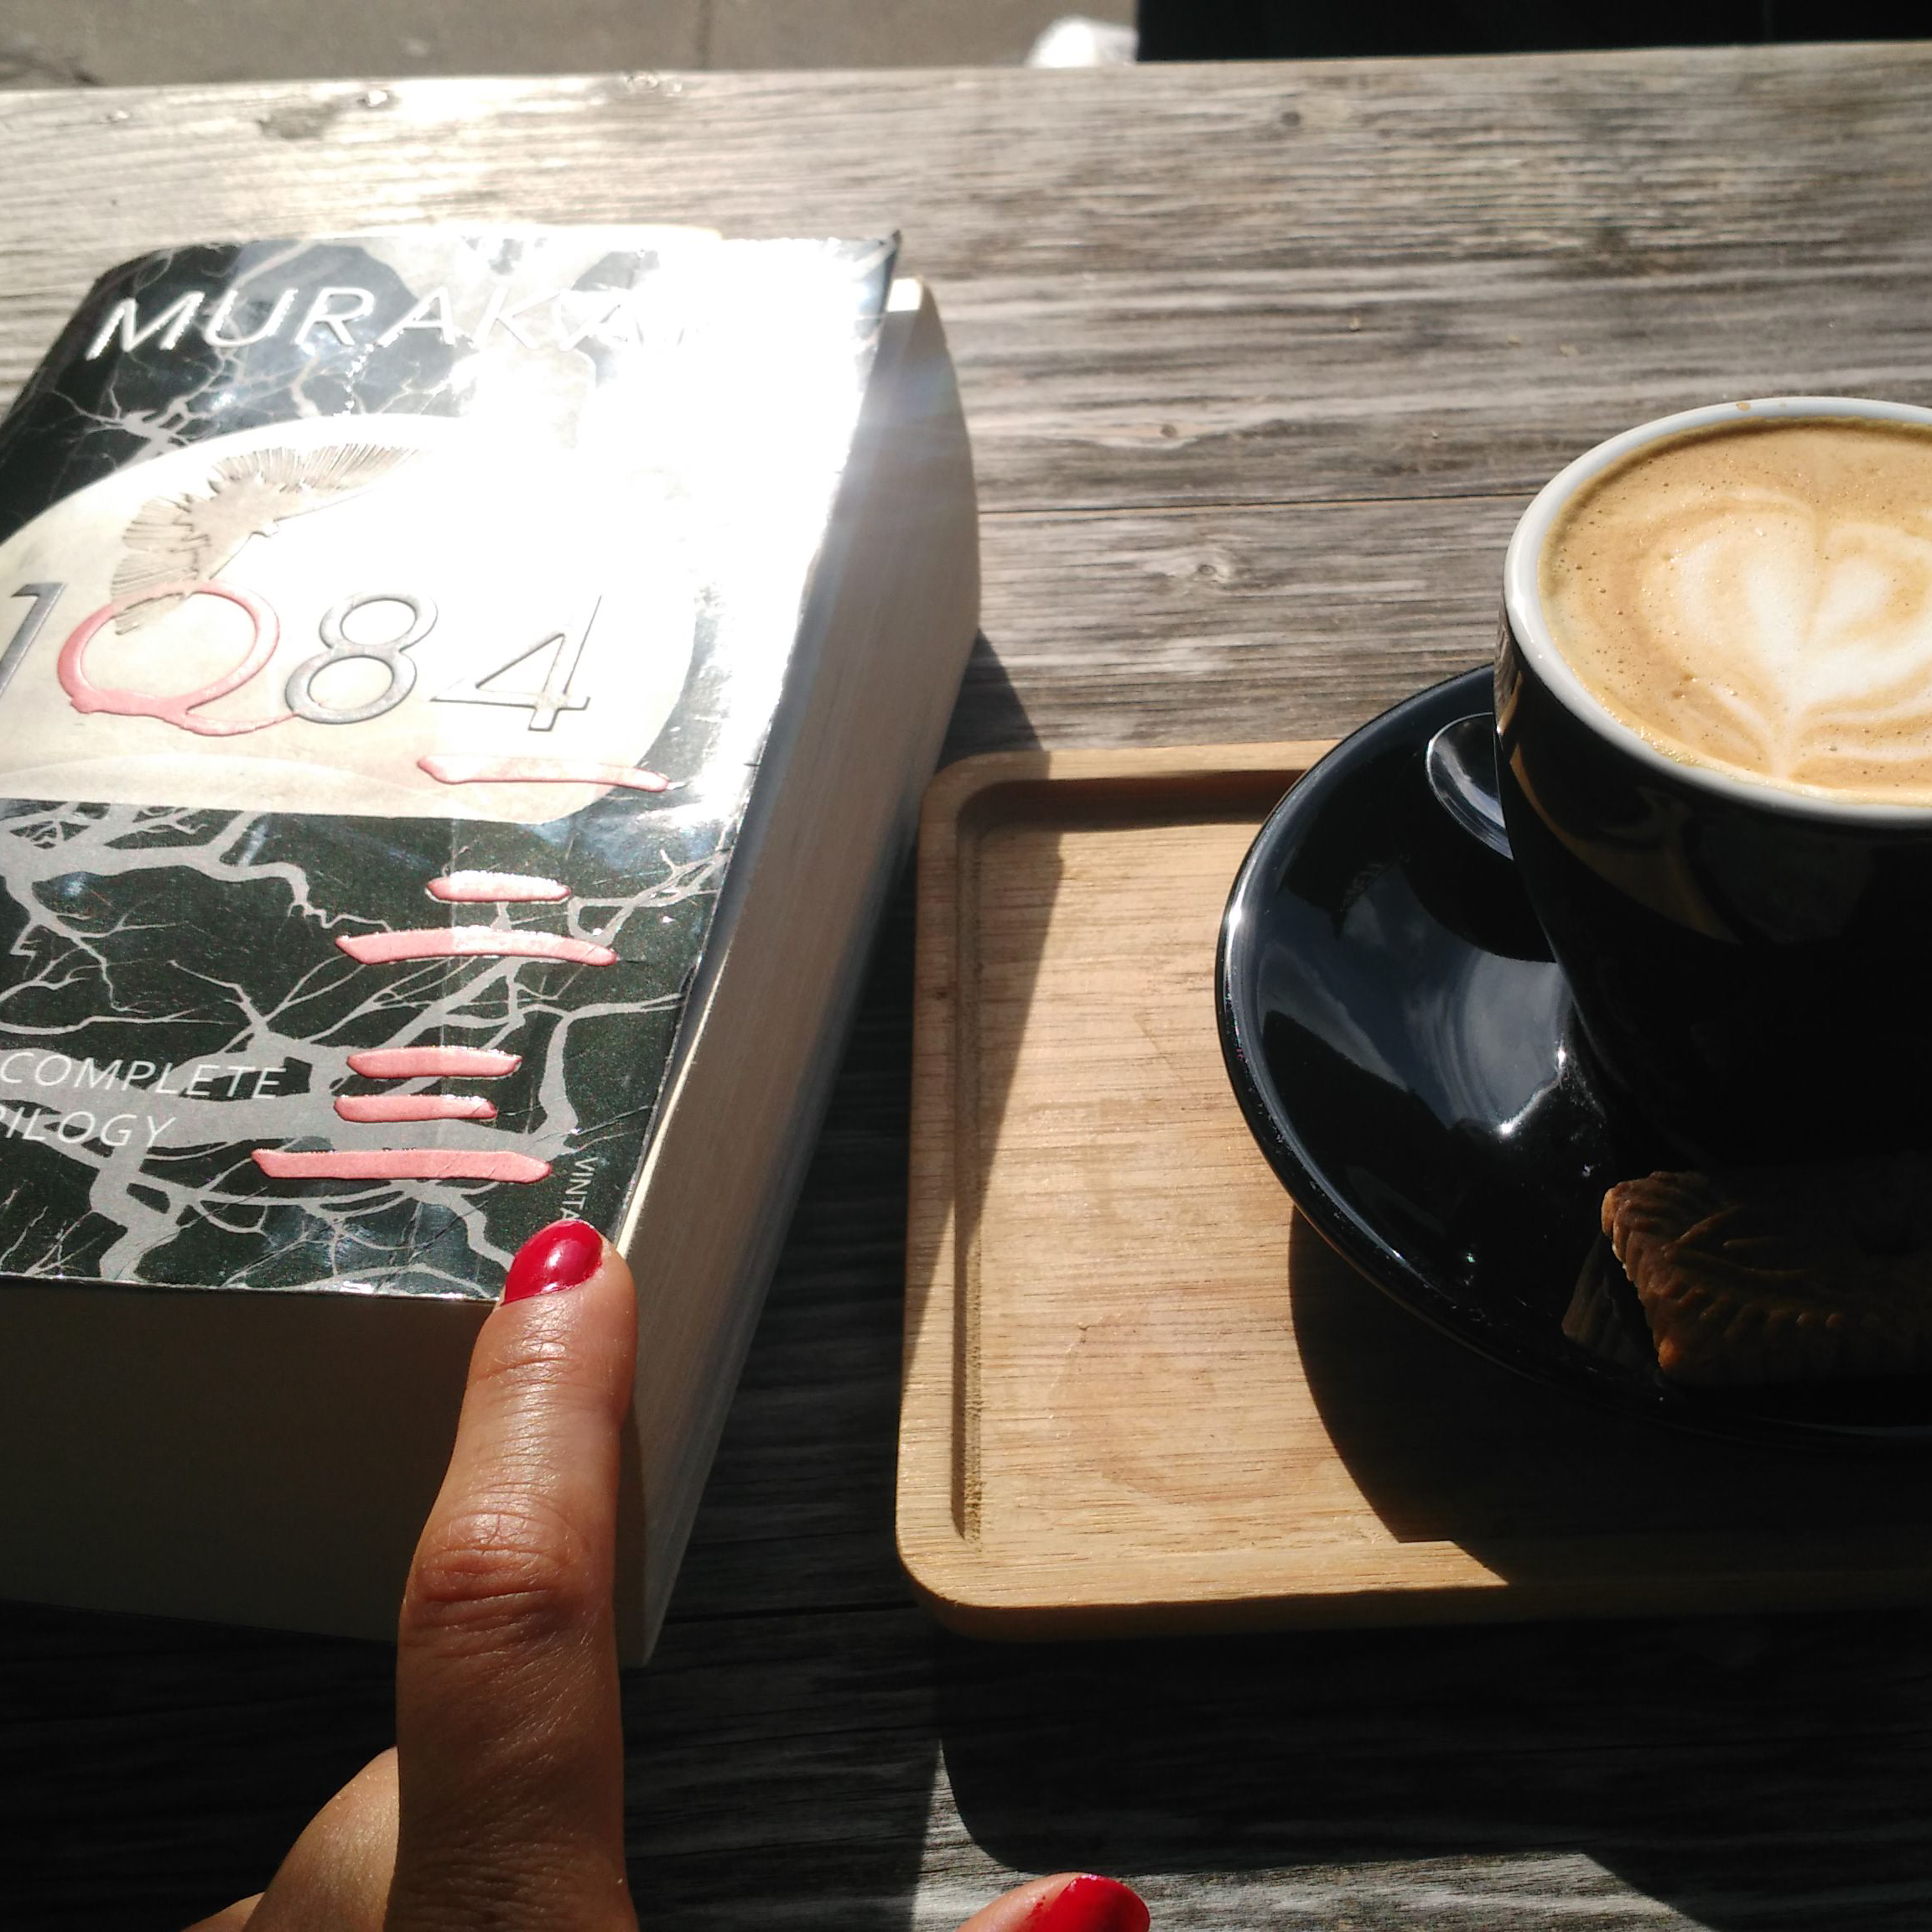 Cafe, coffee, books, 1q84, soy latte, Europe, Gent, Belgium, expat, American, loneliness